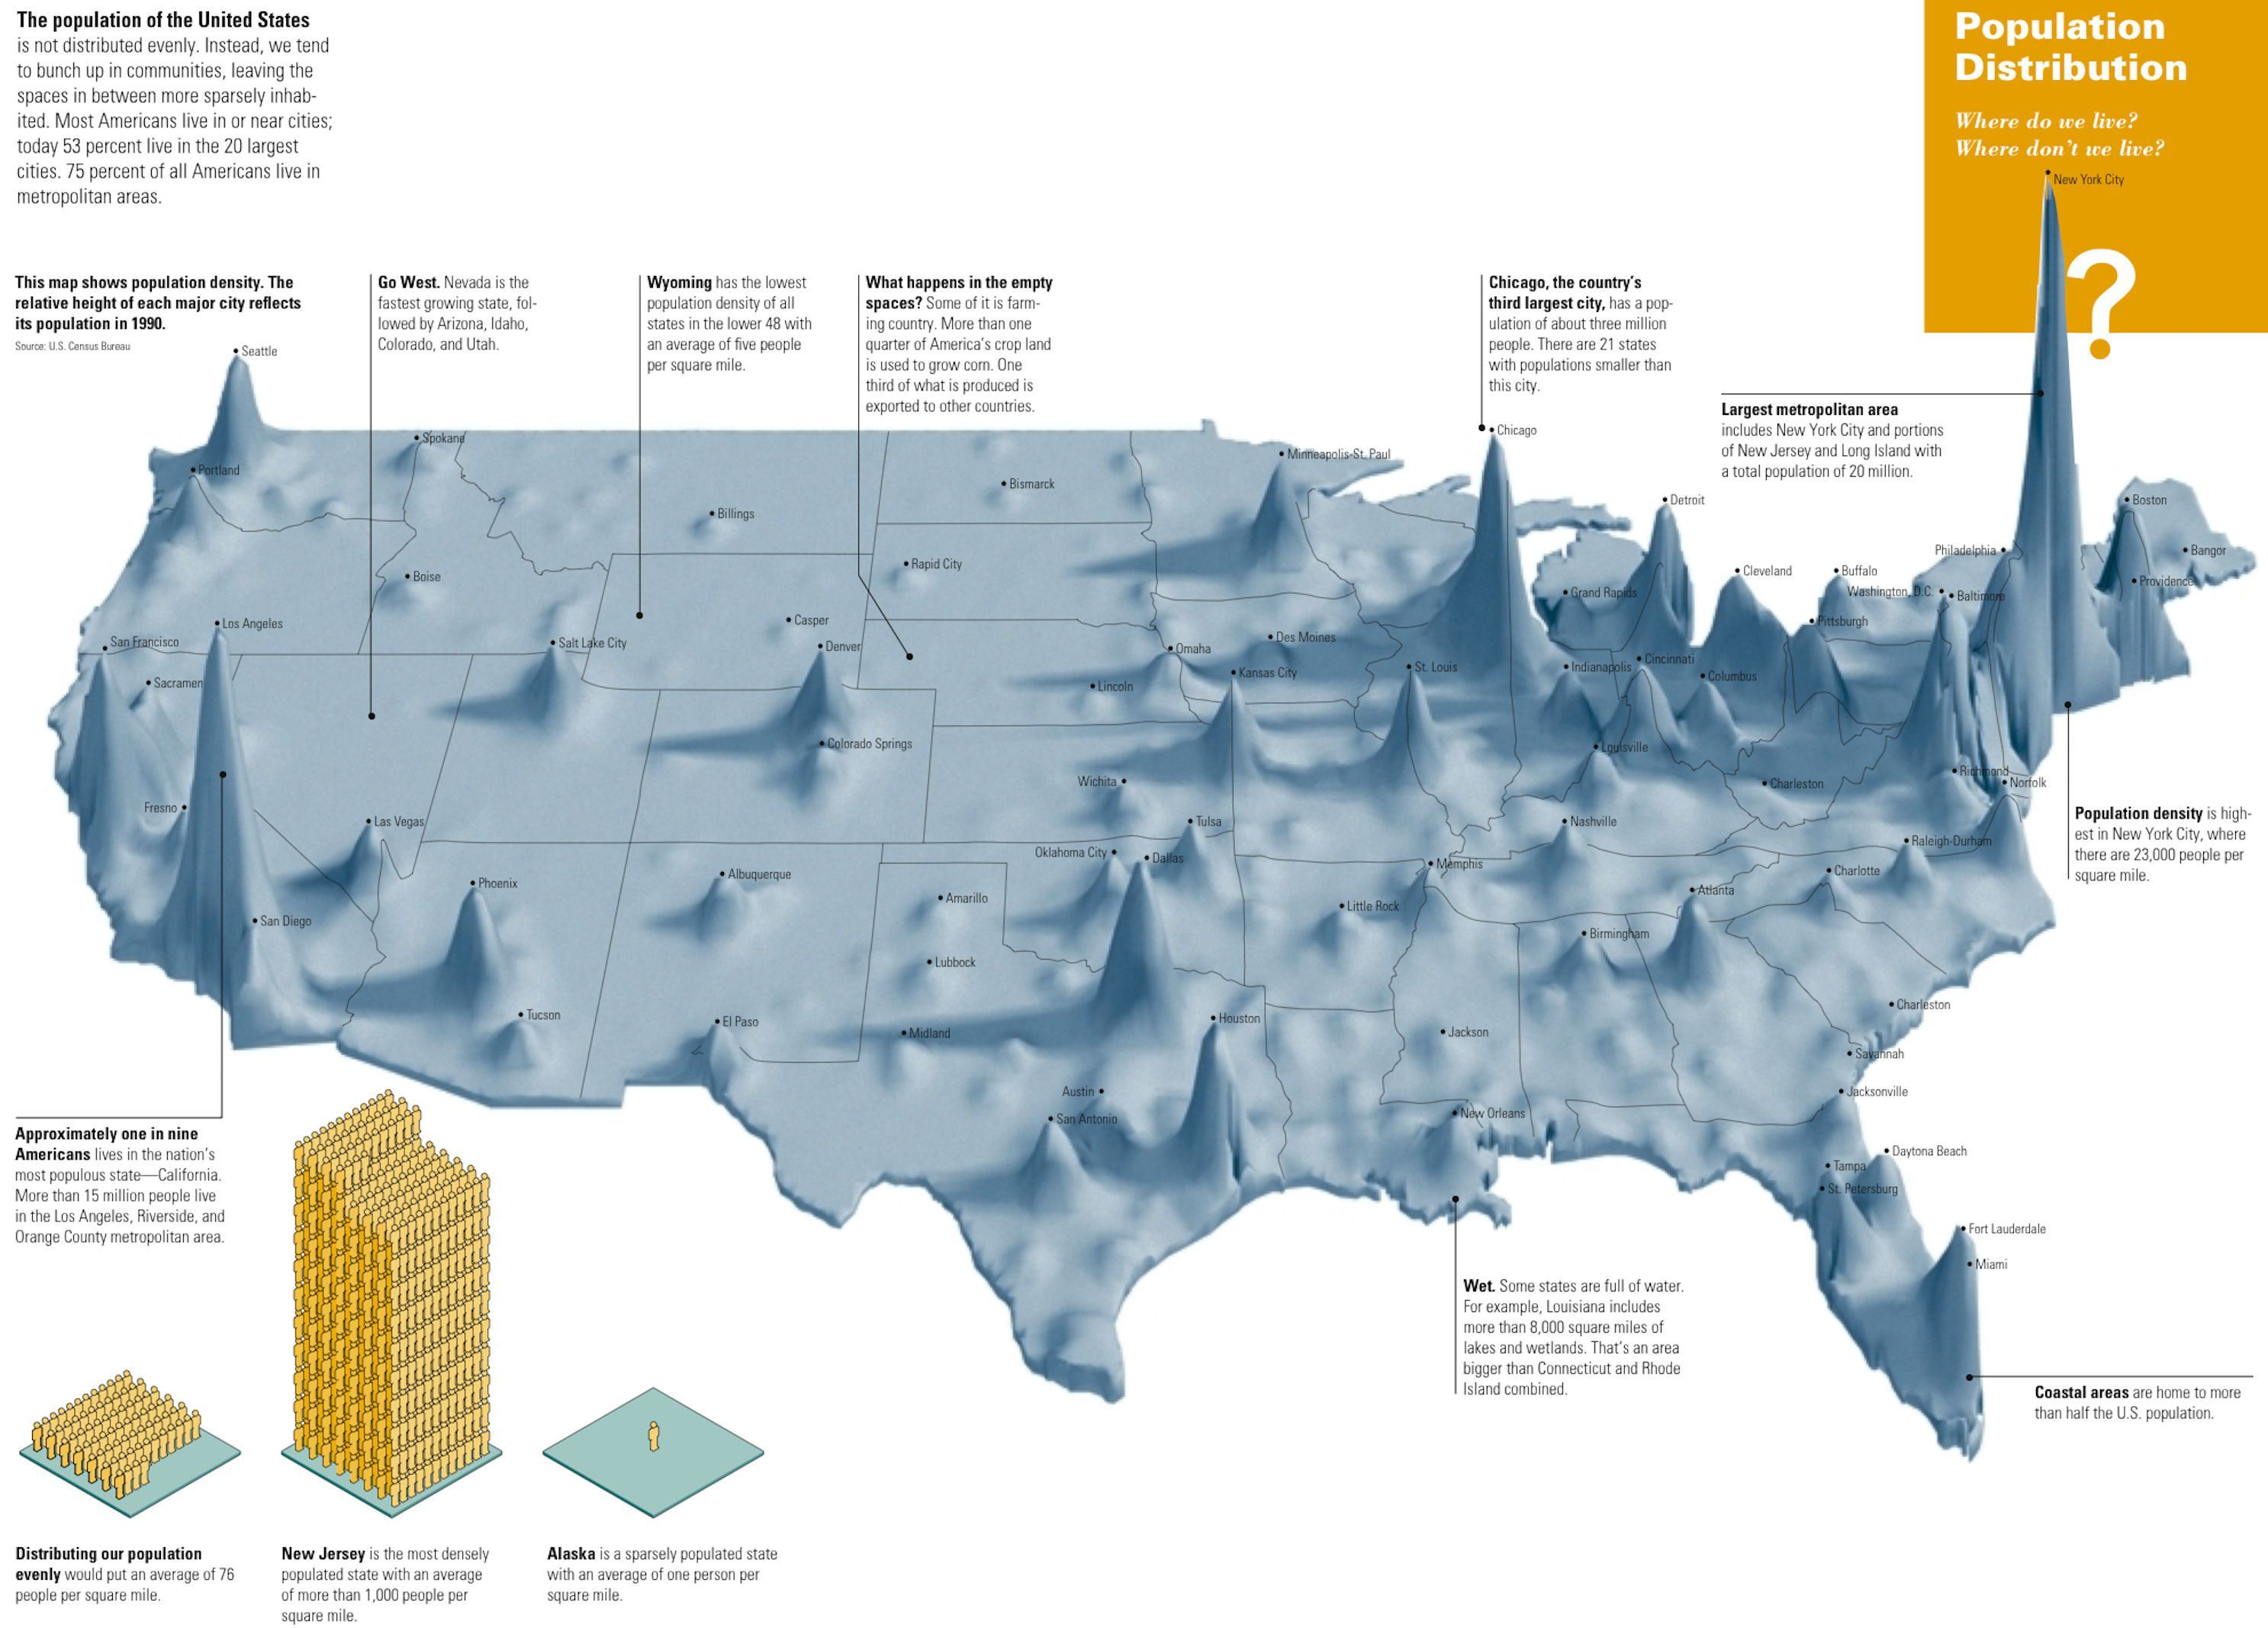 Population Density of the United States